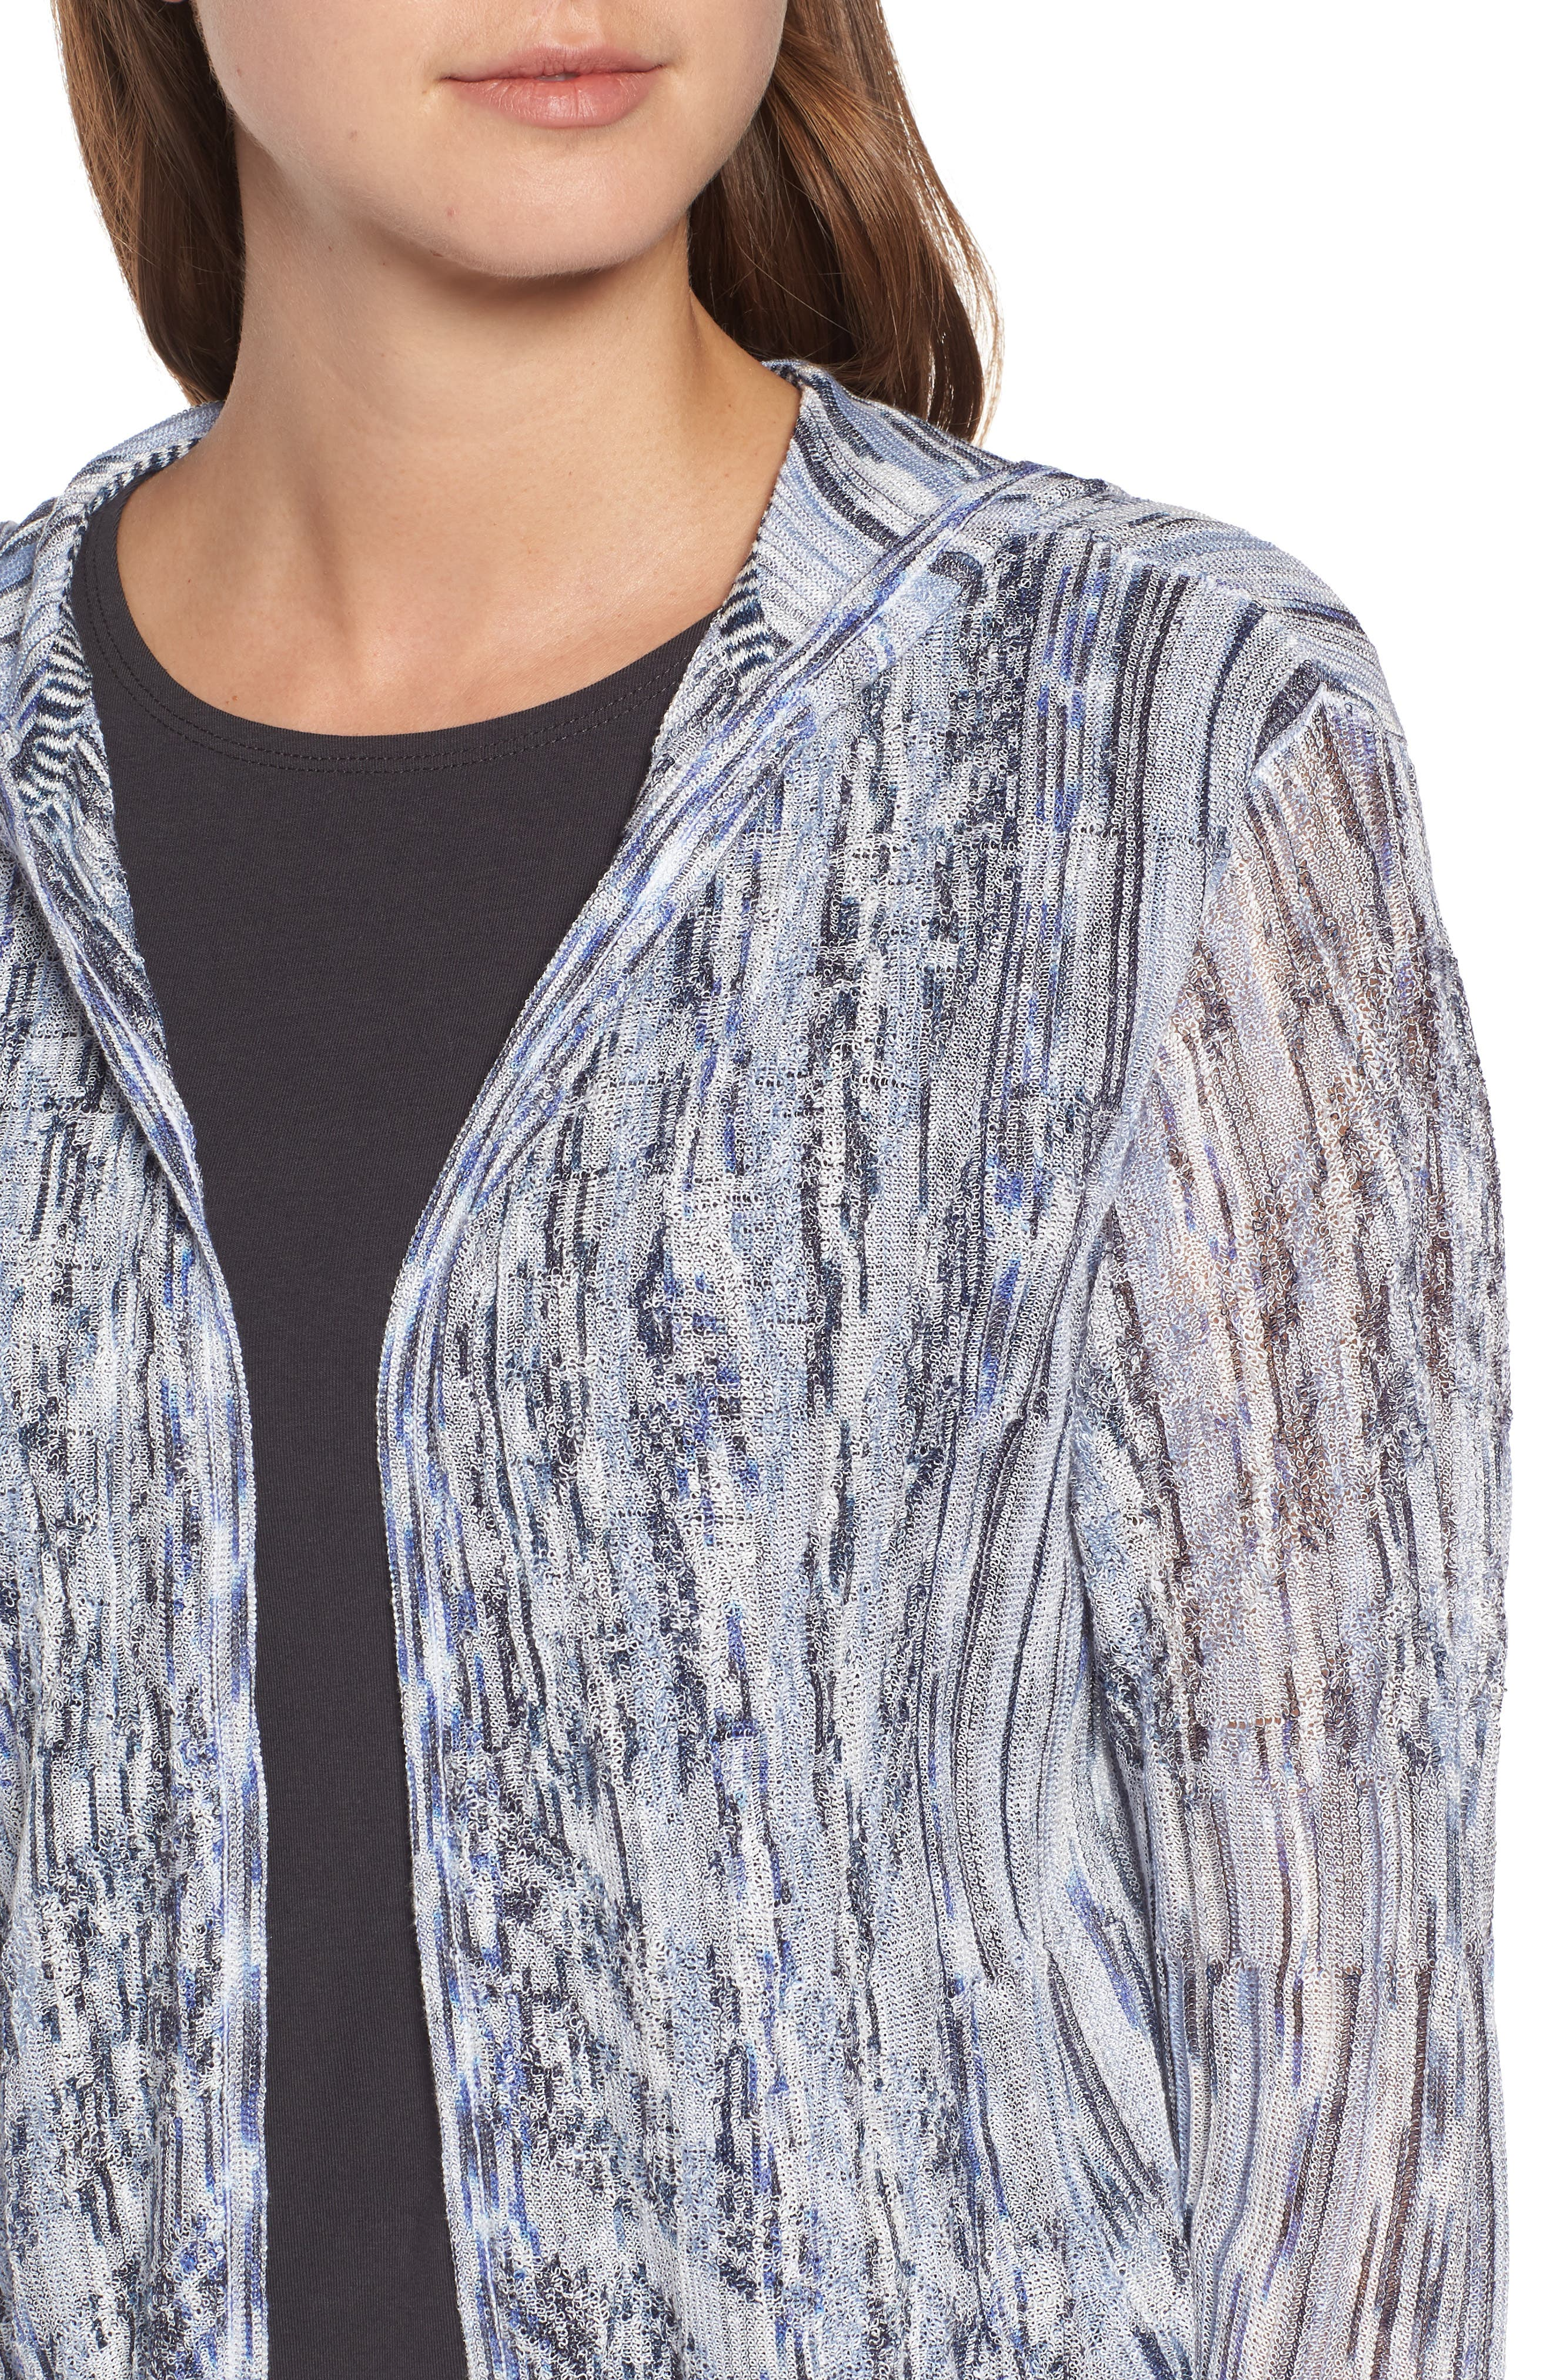 New Frontier Hooded Cardigan,                             Alternate thumbnail 4, color,                             490